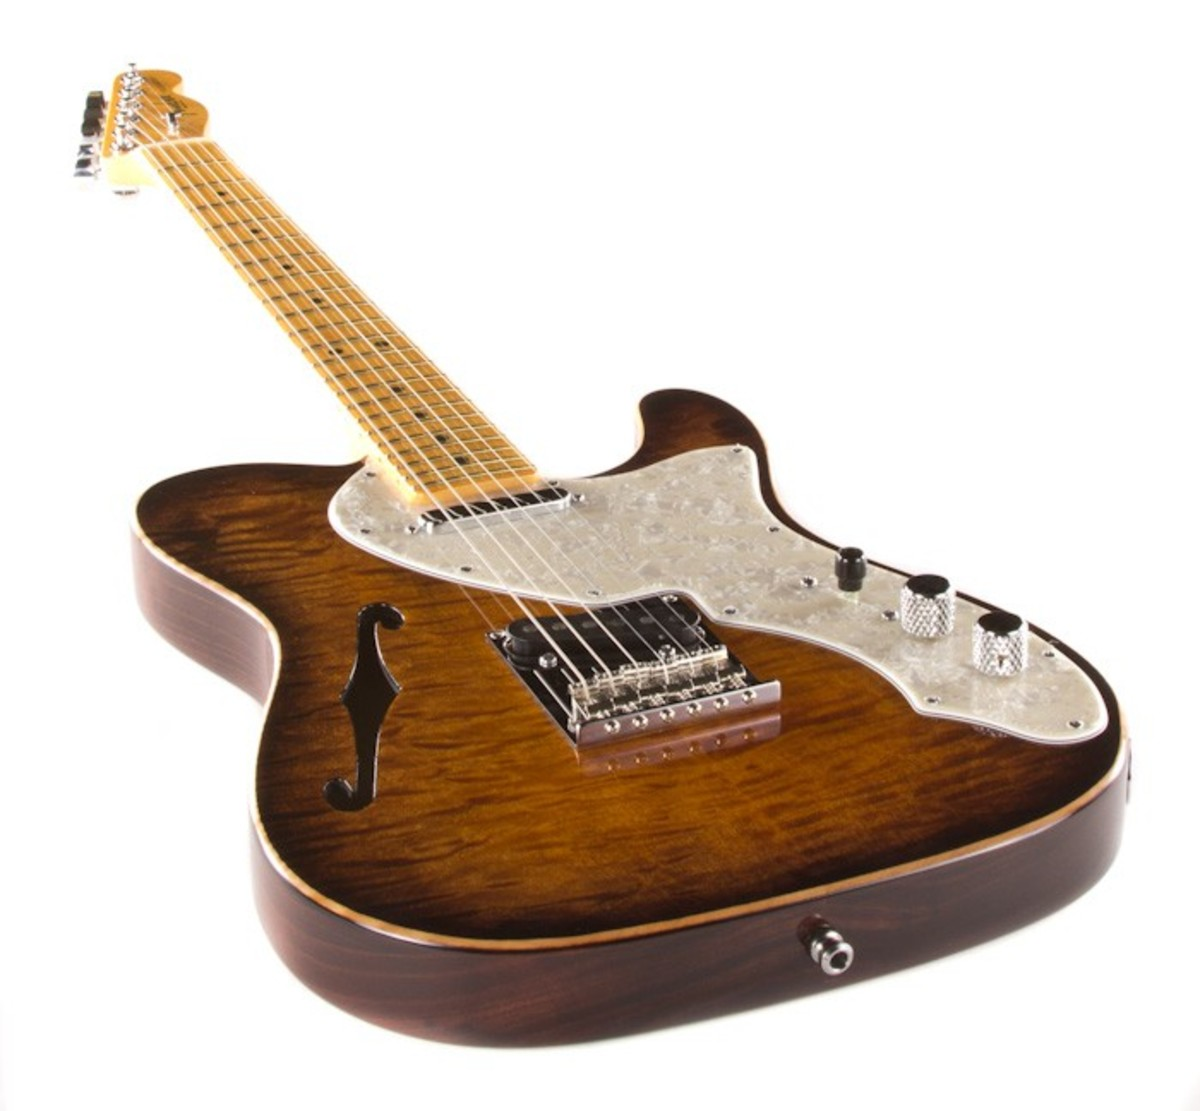 Fender American Select Thinline Telecaster Electric